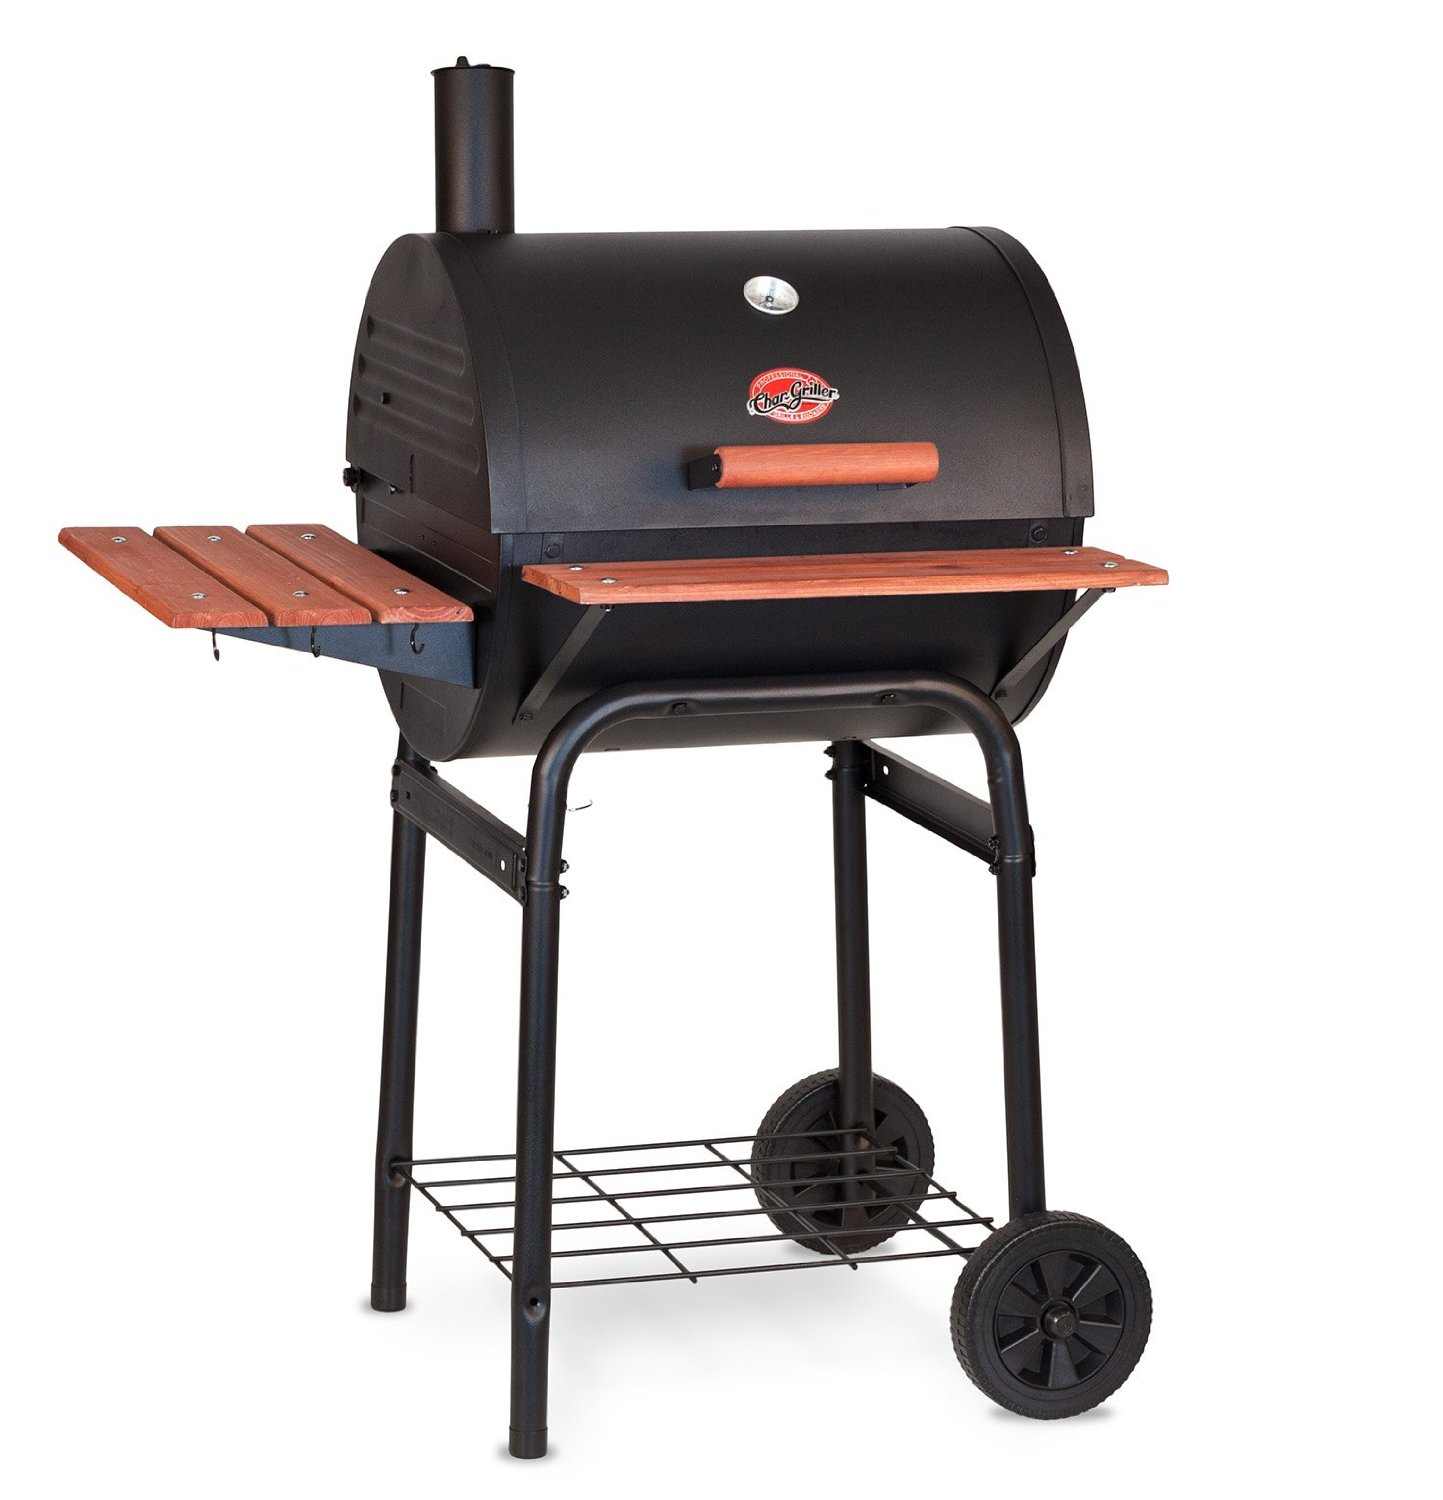 Time To Start Grilling With The Very Best- Top 10 Charcoal Grills